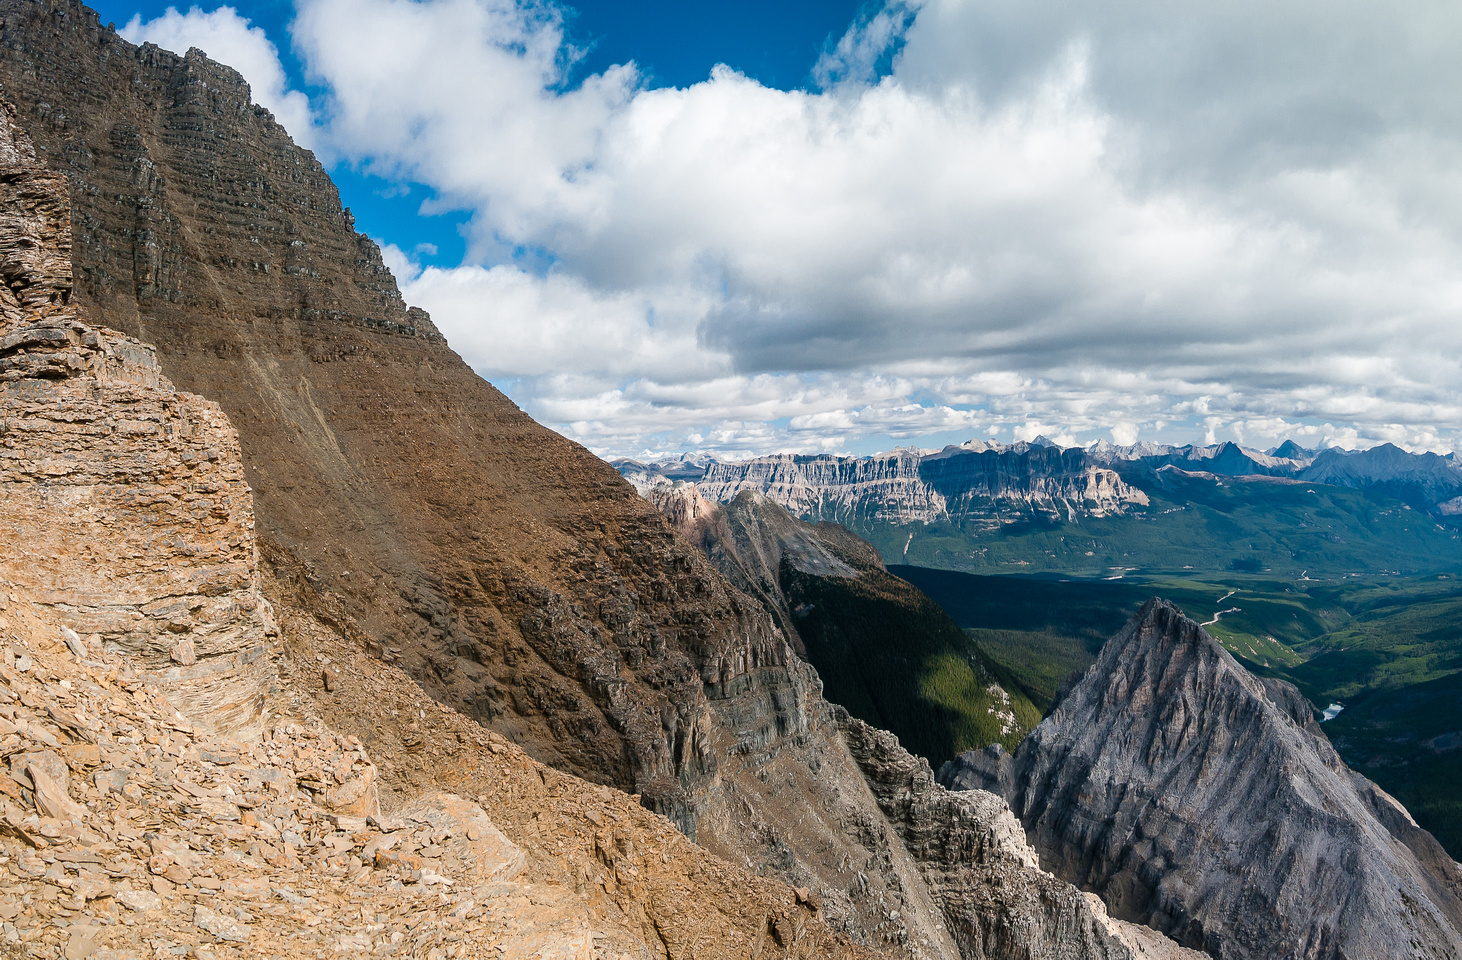 Looking back over the east face of Whymper from the south ridge.